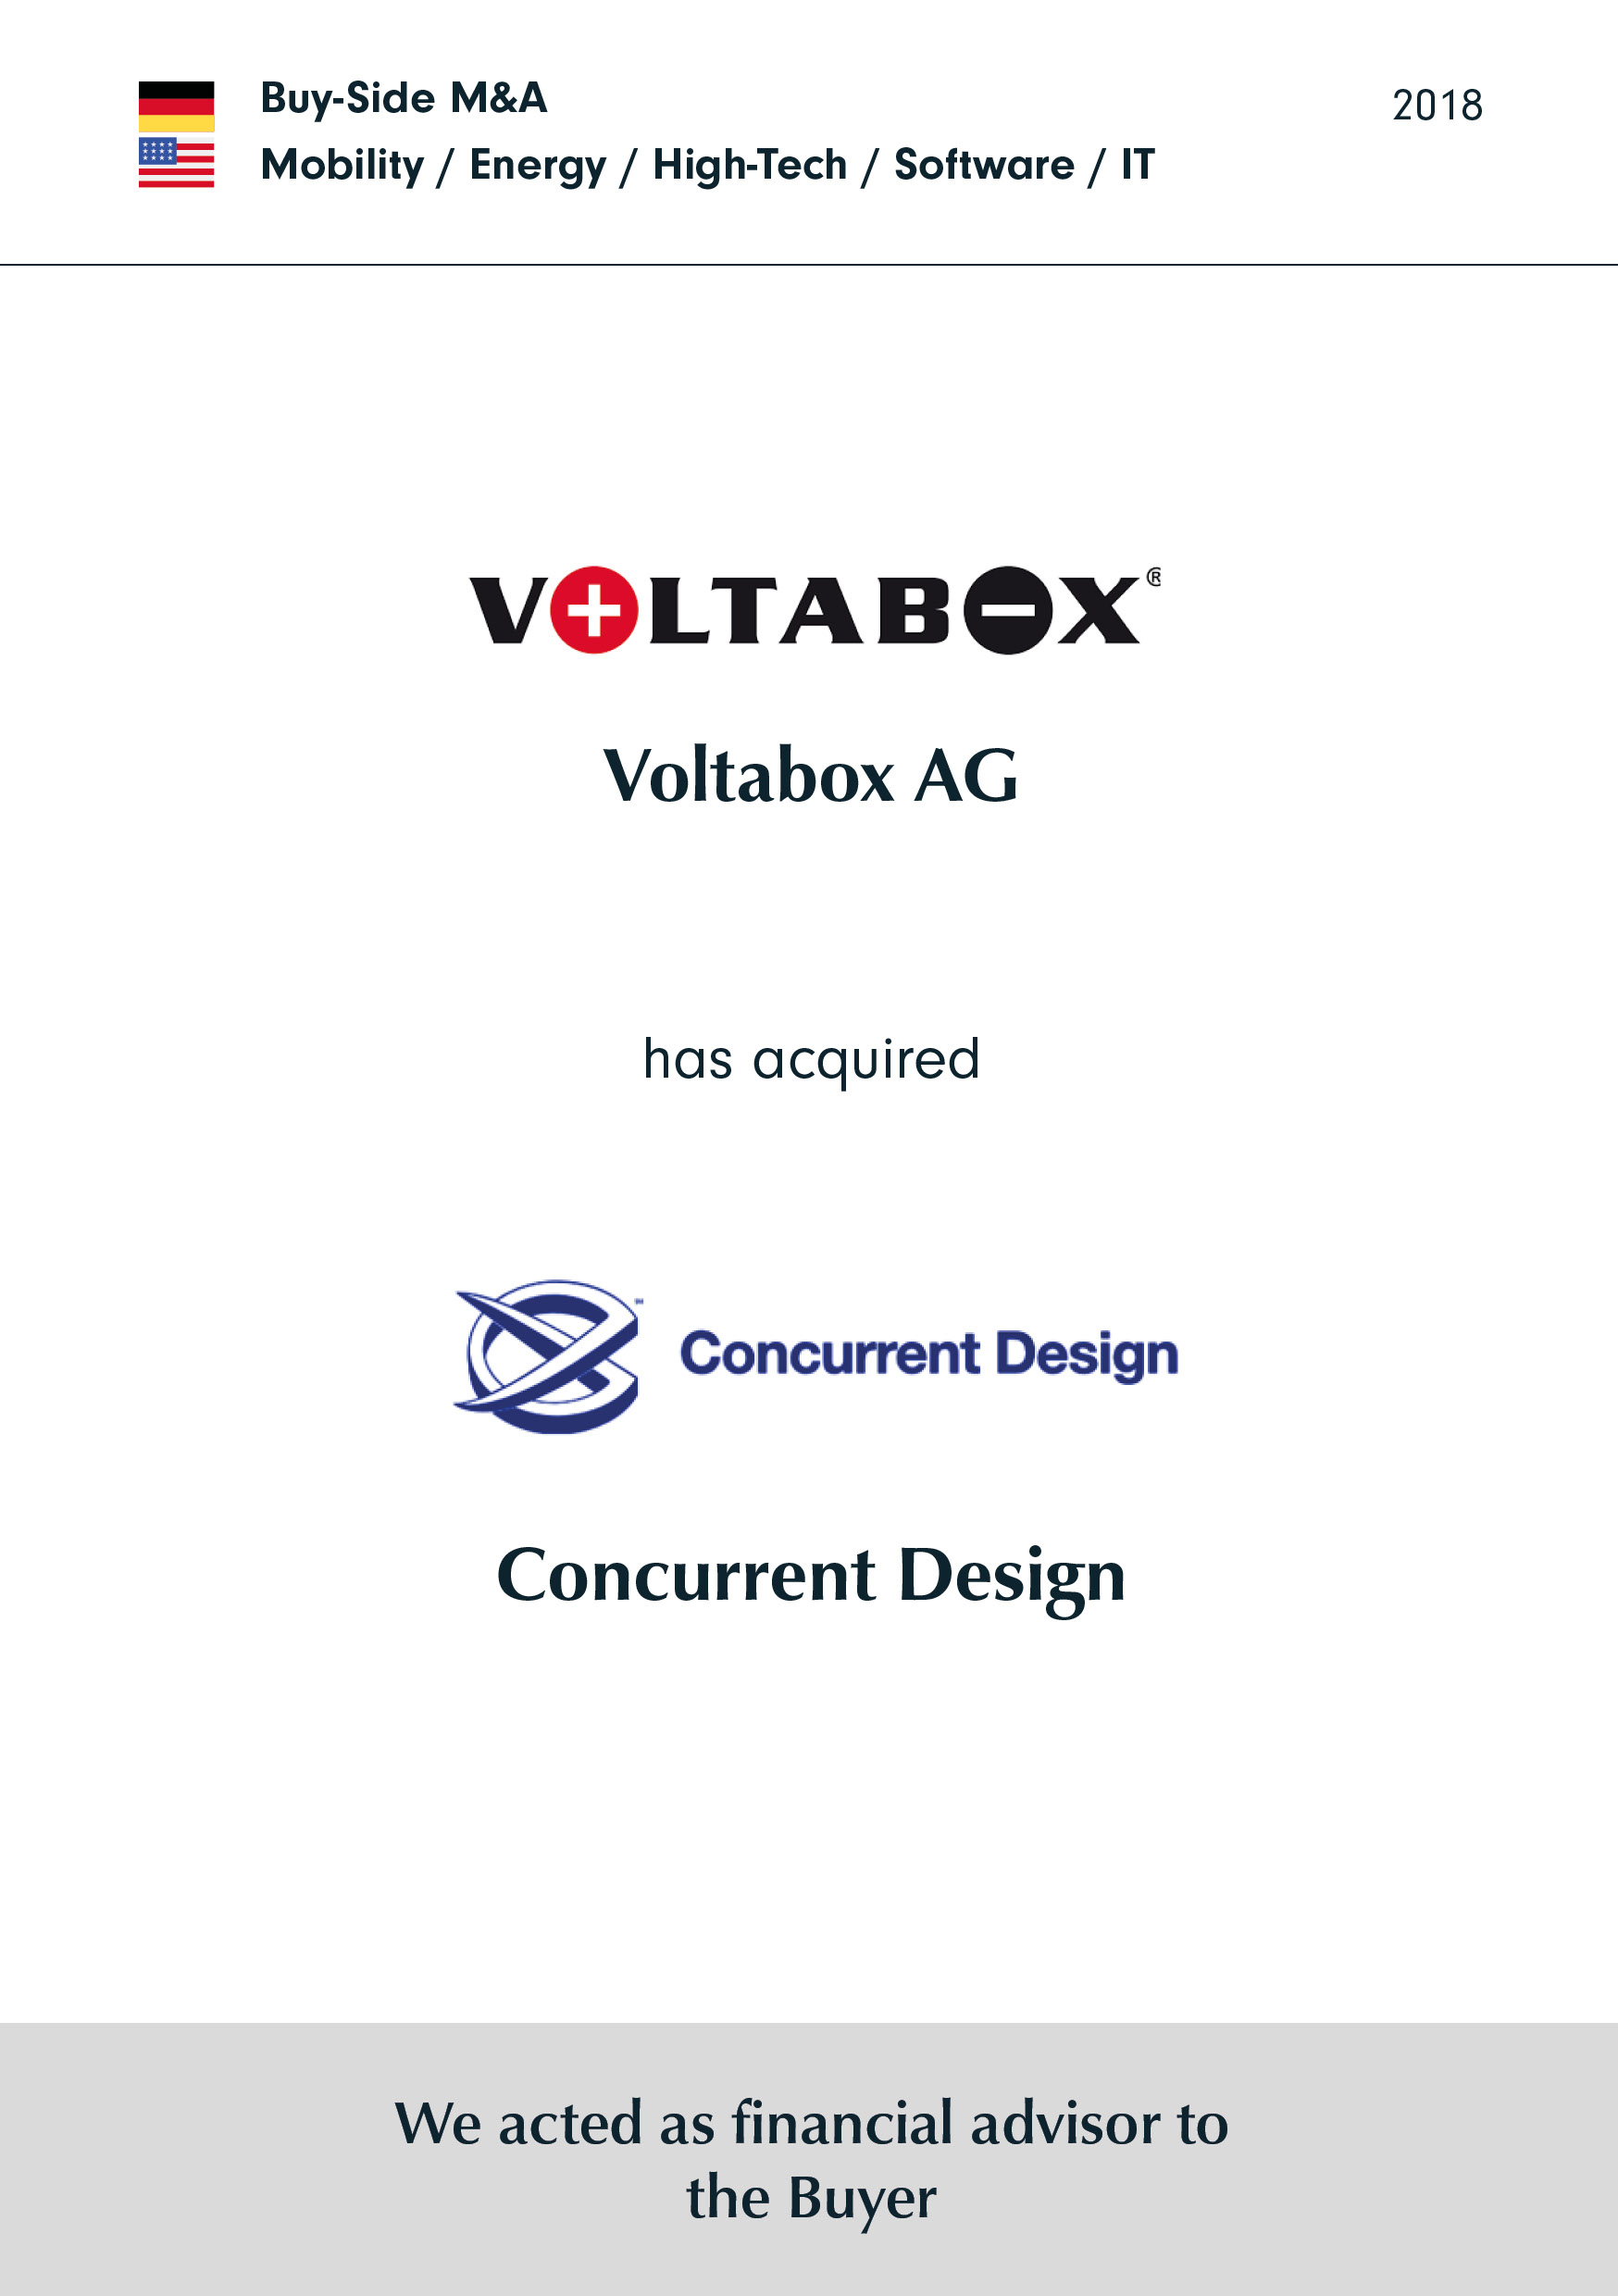 Voltabox | hat | Concurrent Design | erworben